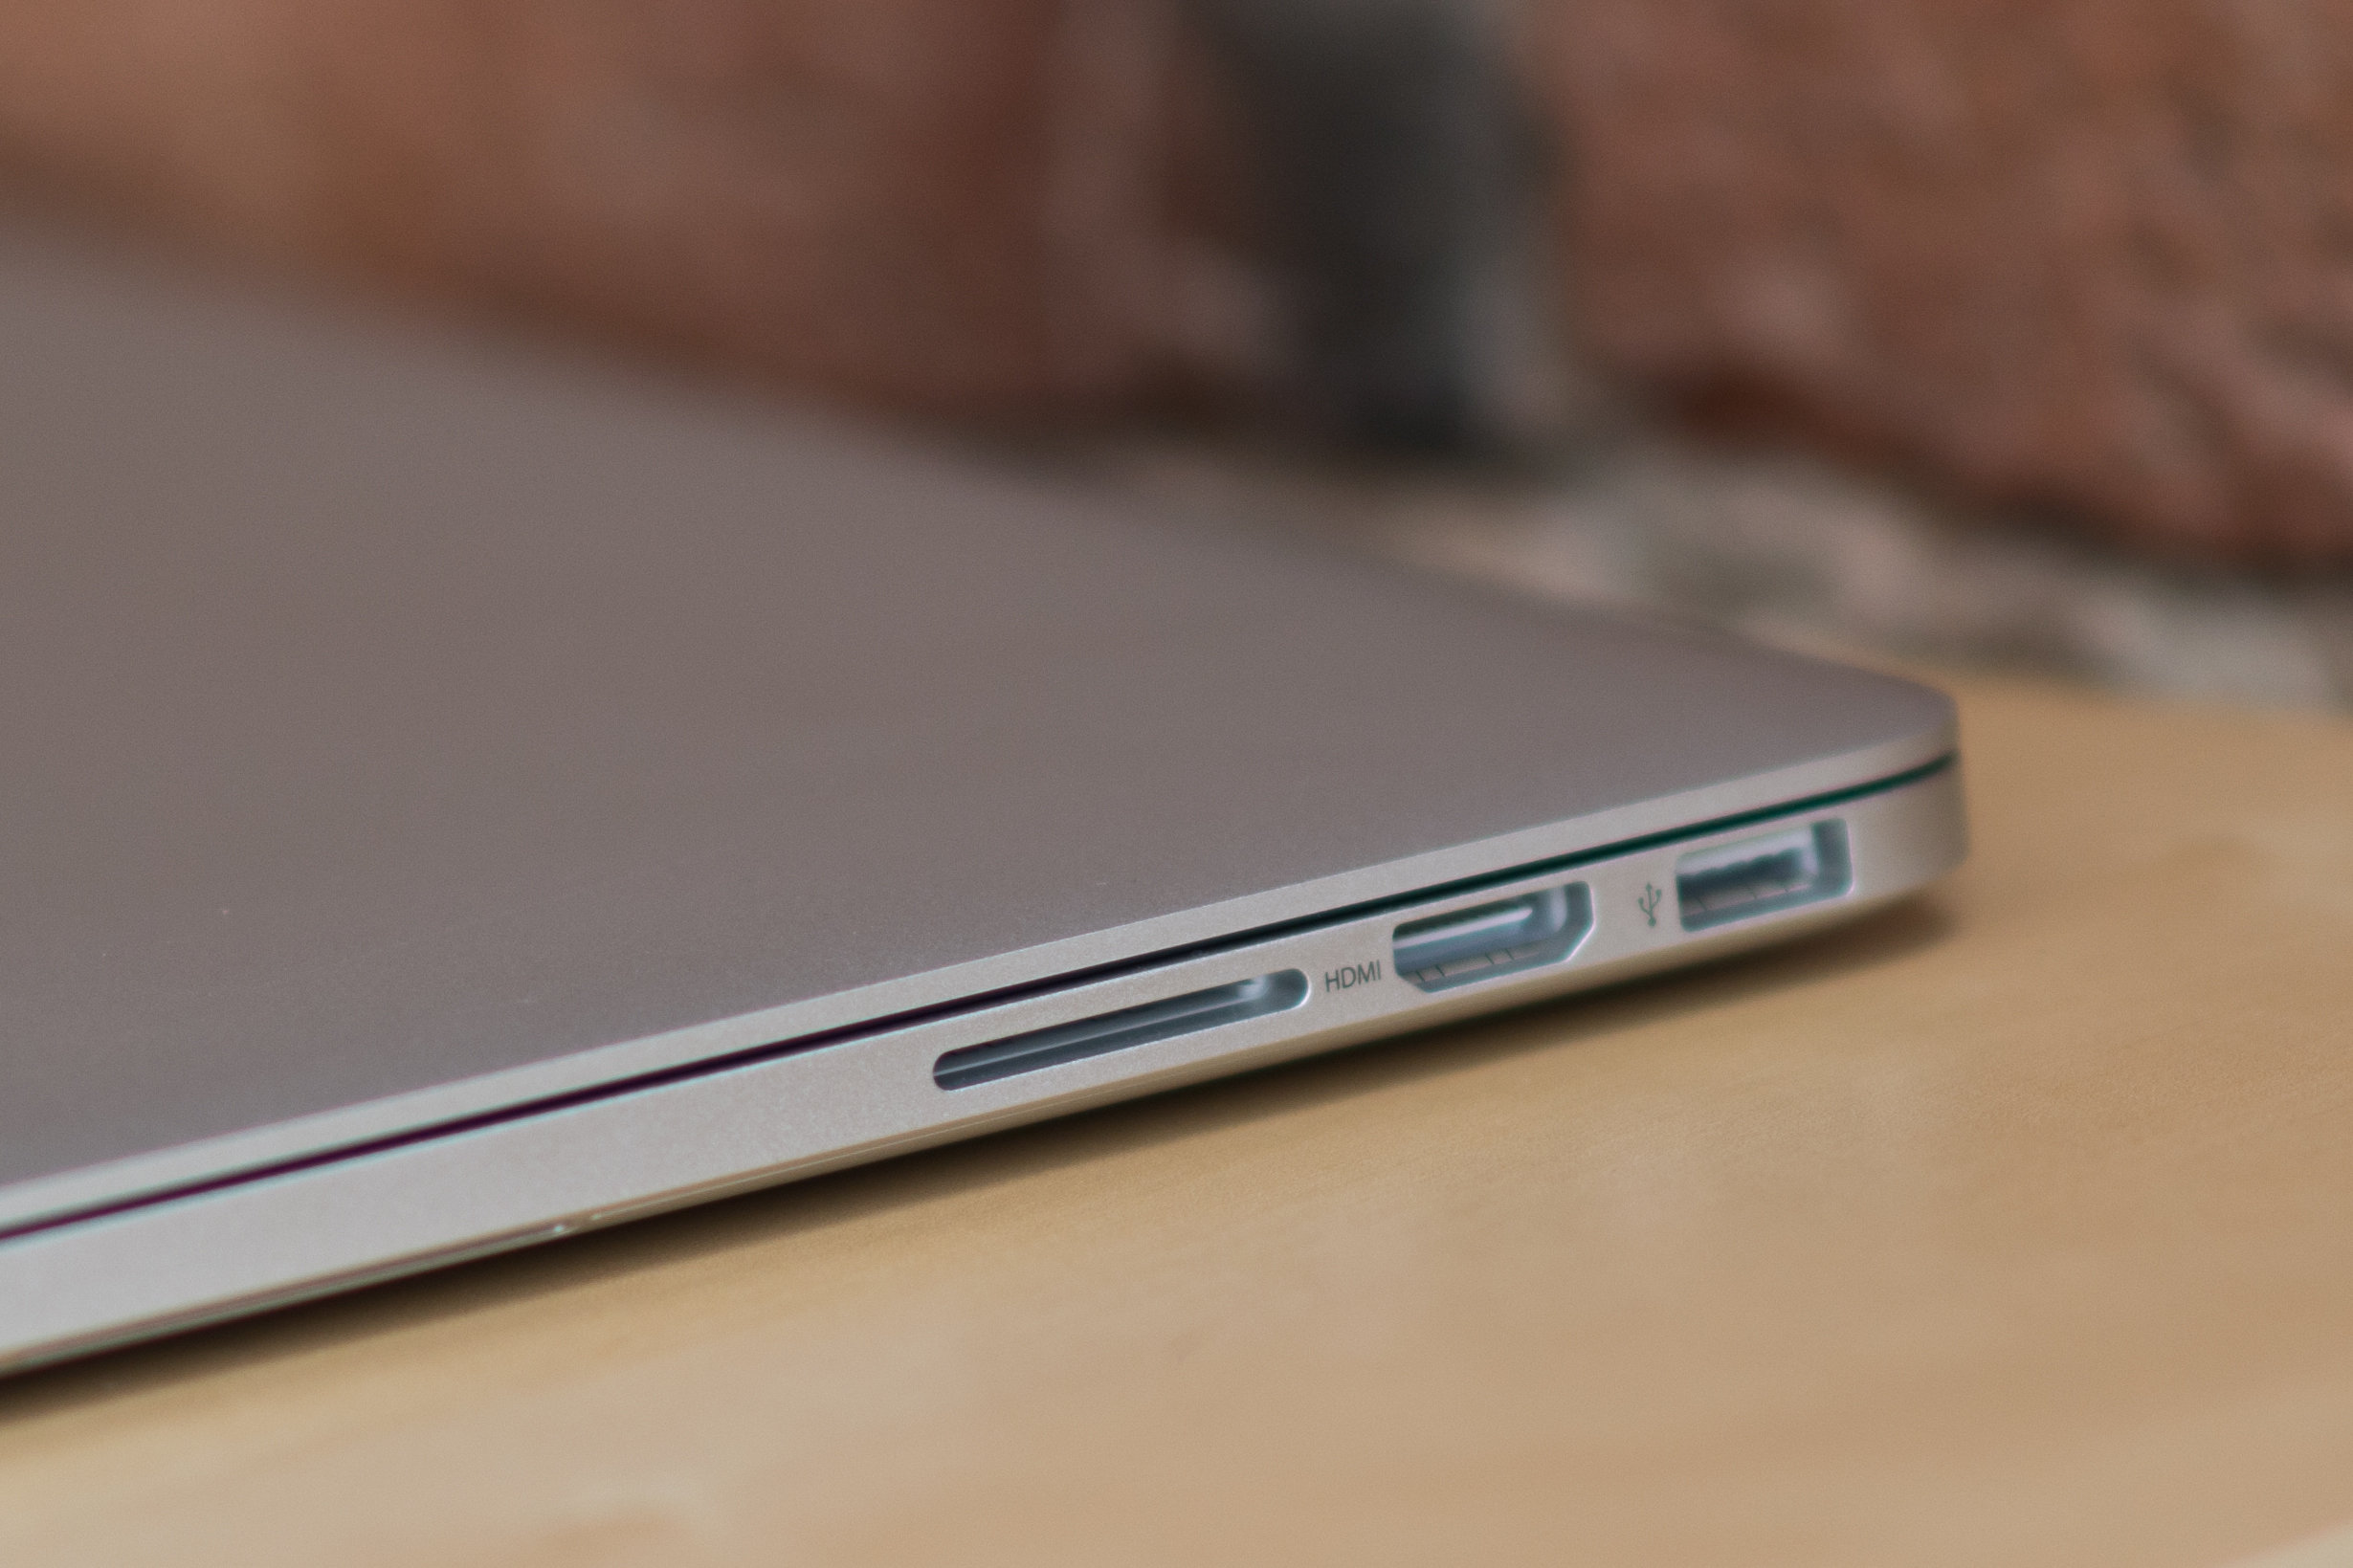 A closer look at the MacBook Pro with Retina Display's card slot.